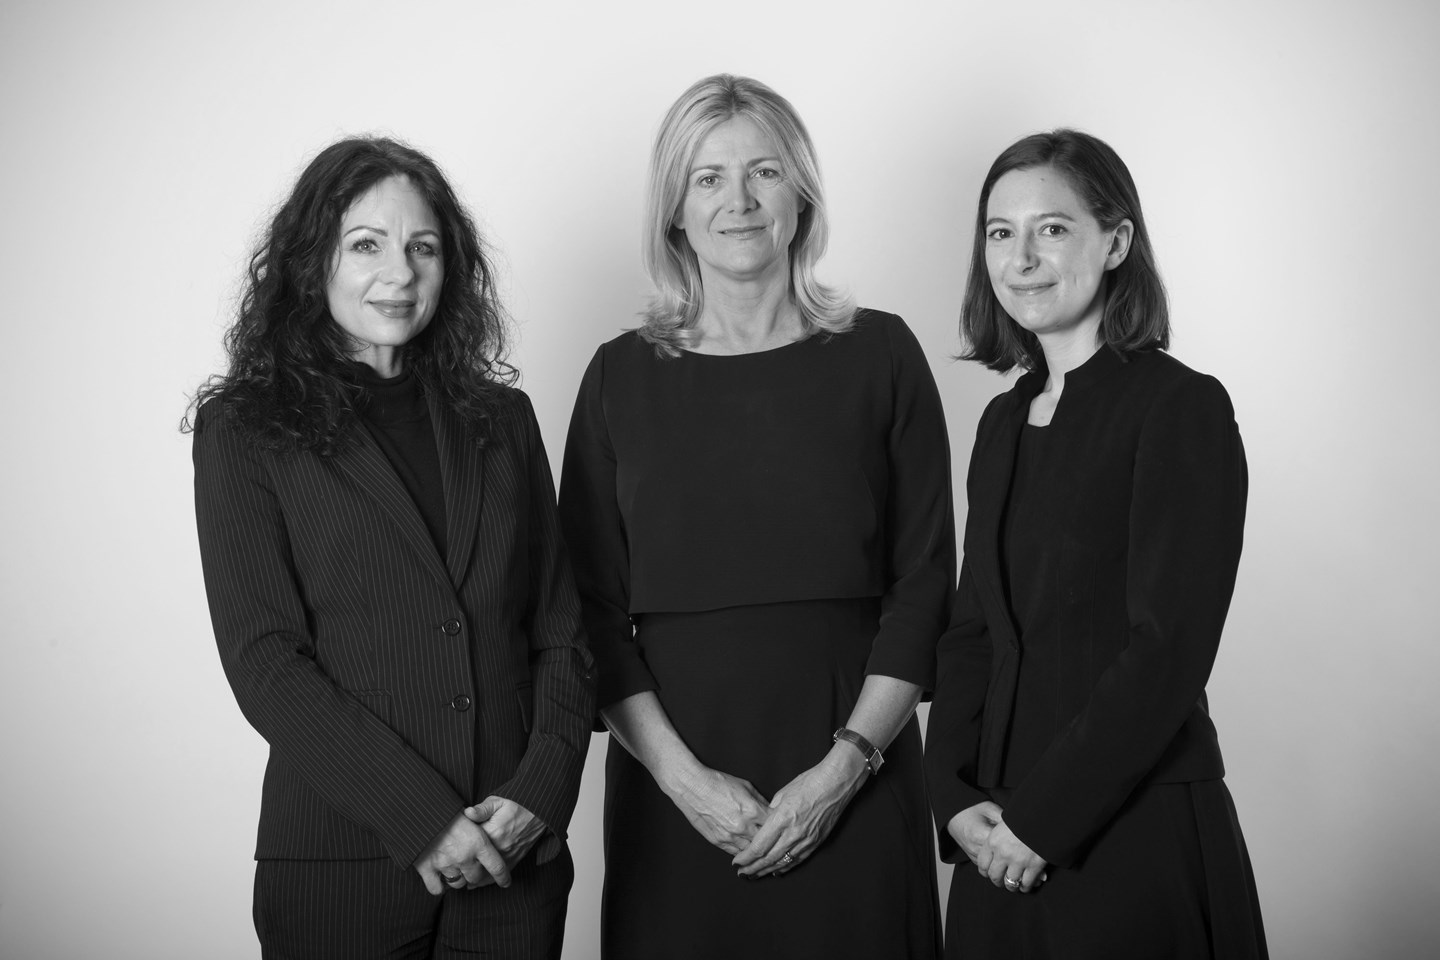 Centre Directors (from left to right): Sandie Gaines, Jill Howell-Williams, Zoe King